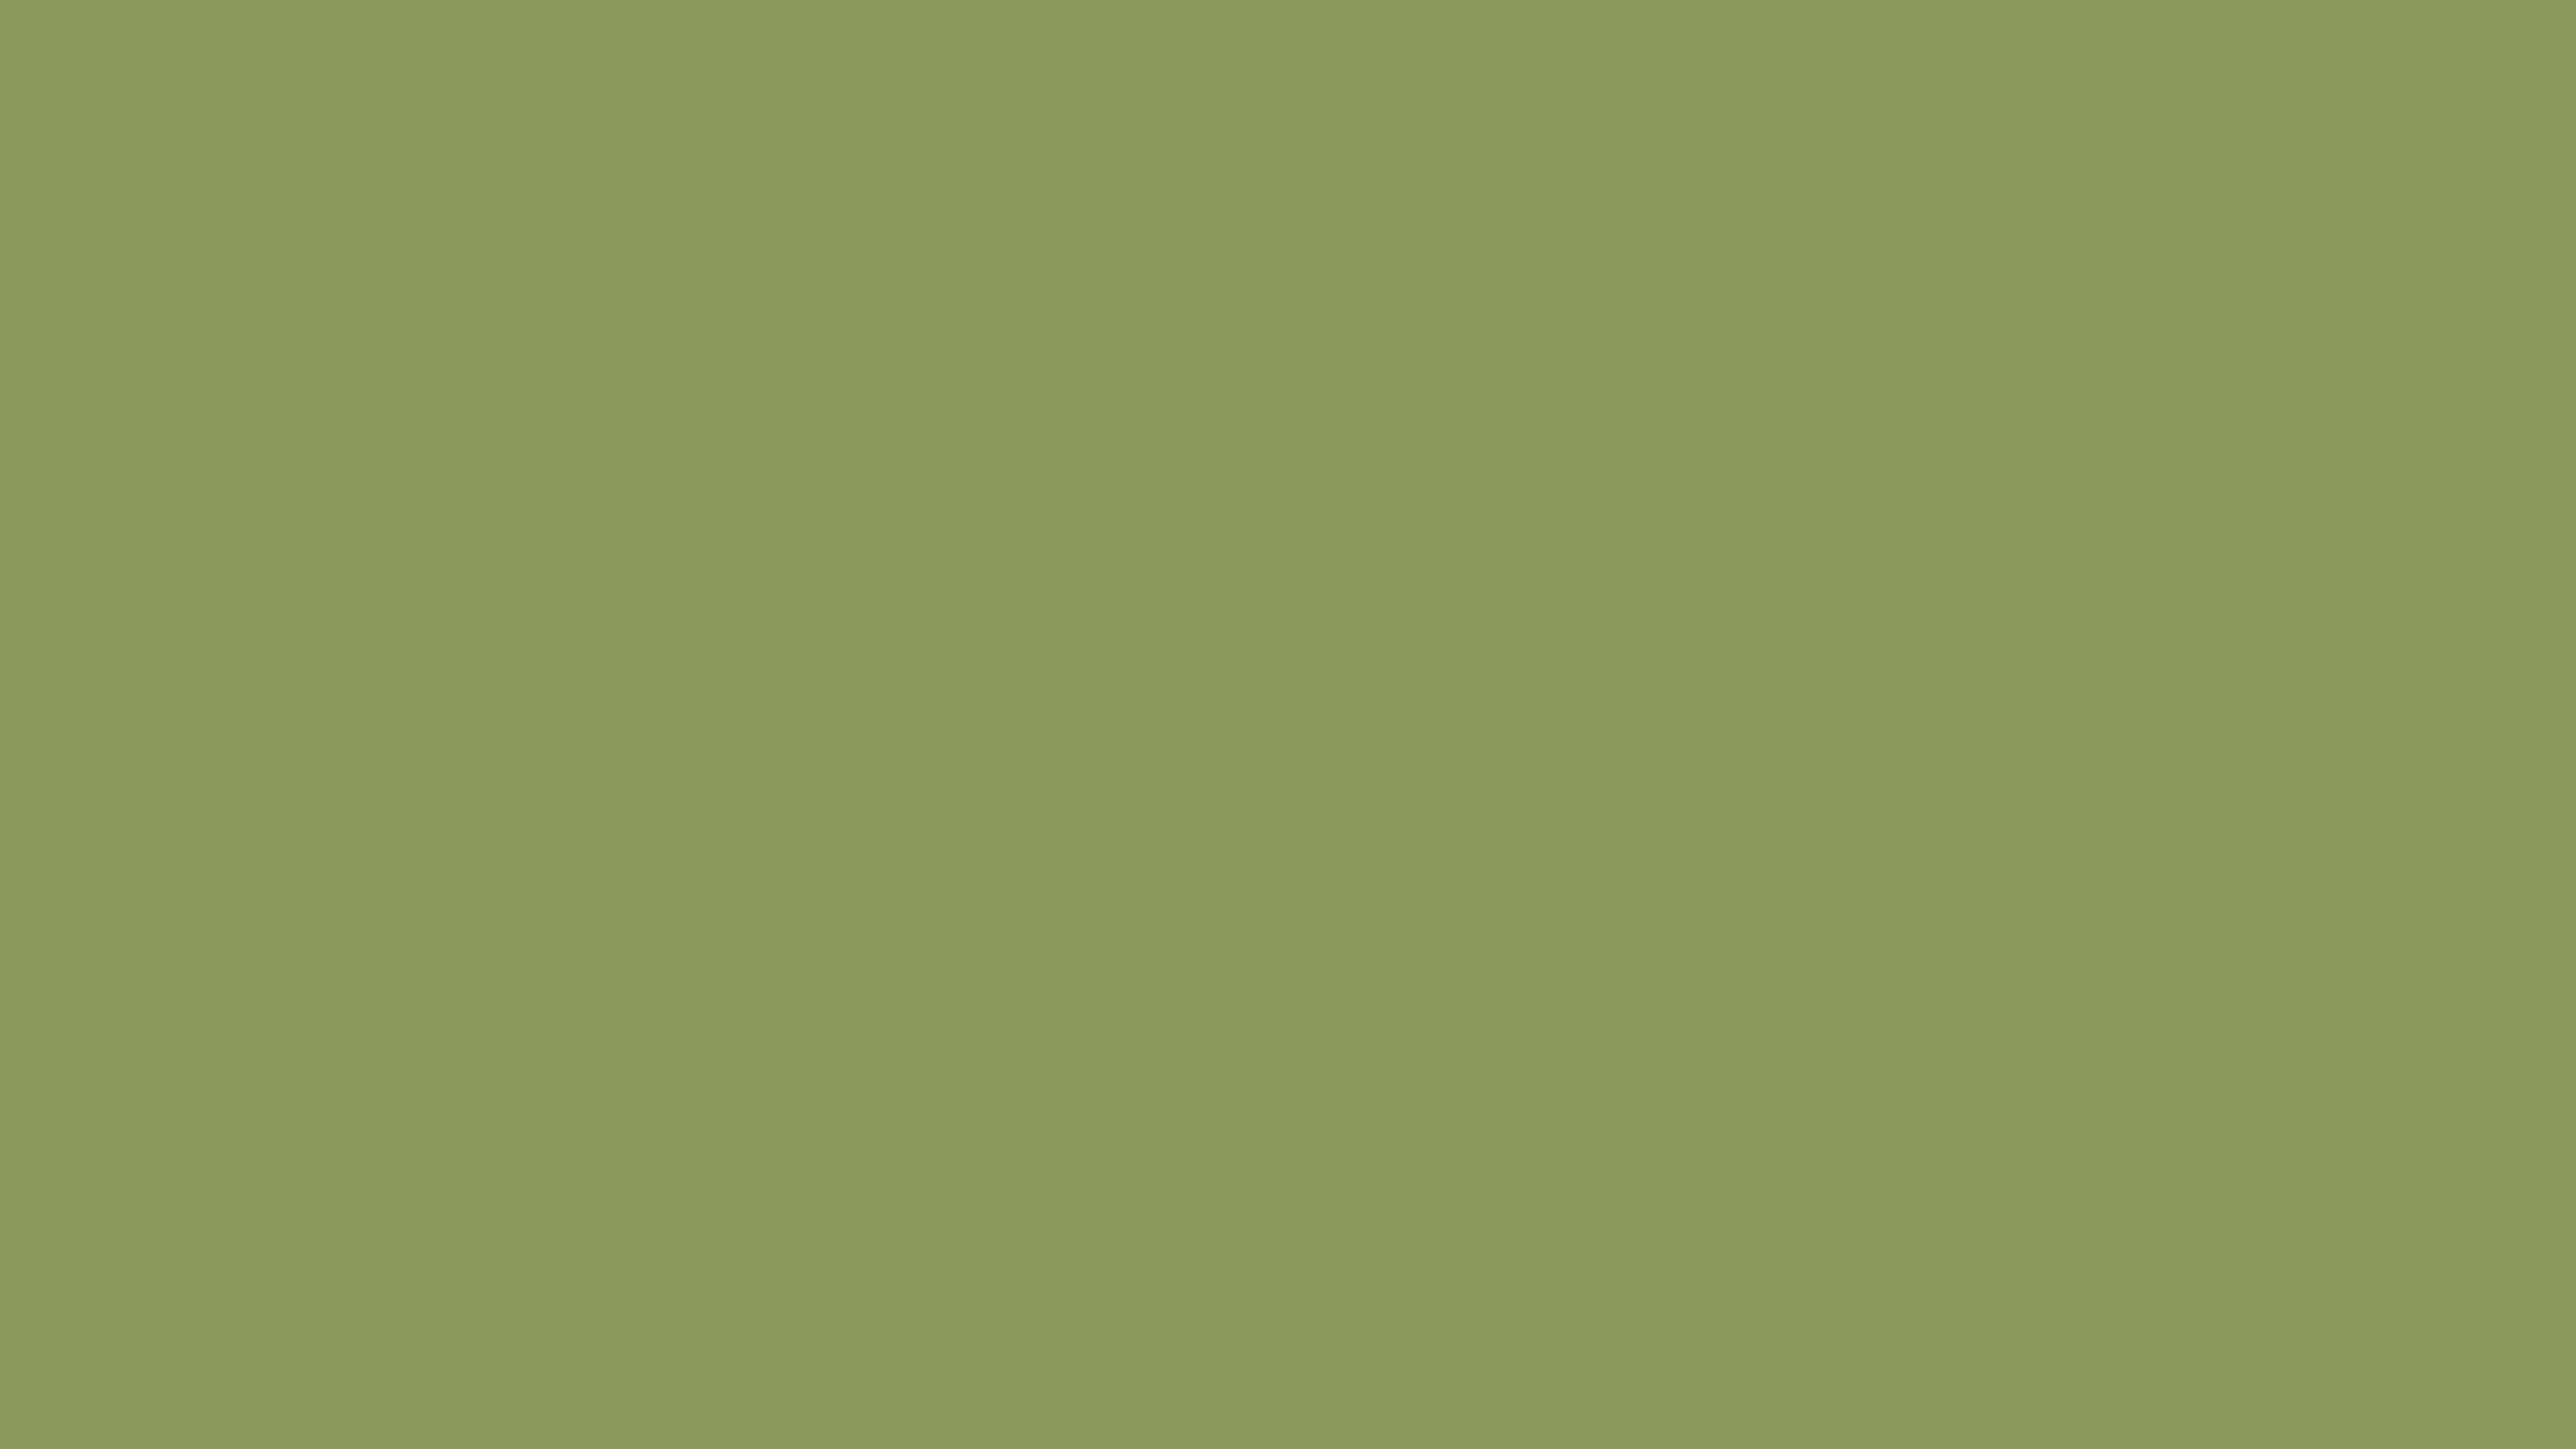 7680x4320 Moss Green Solid Color Background